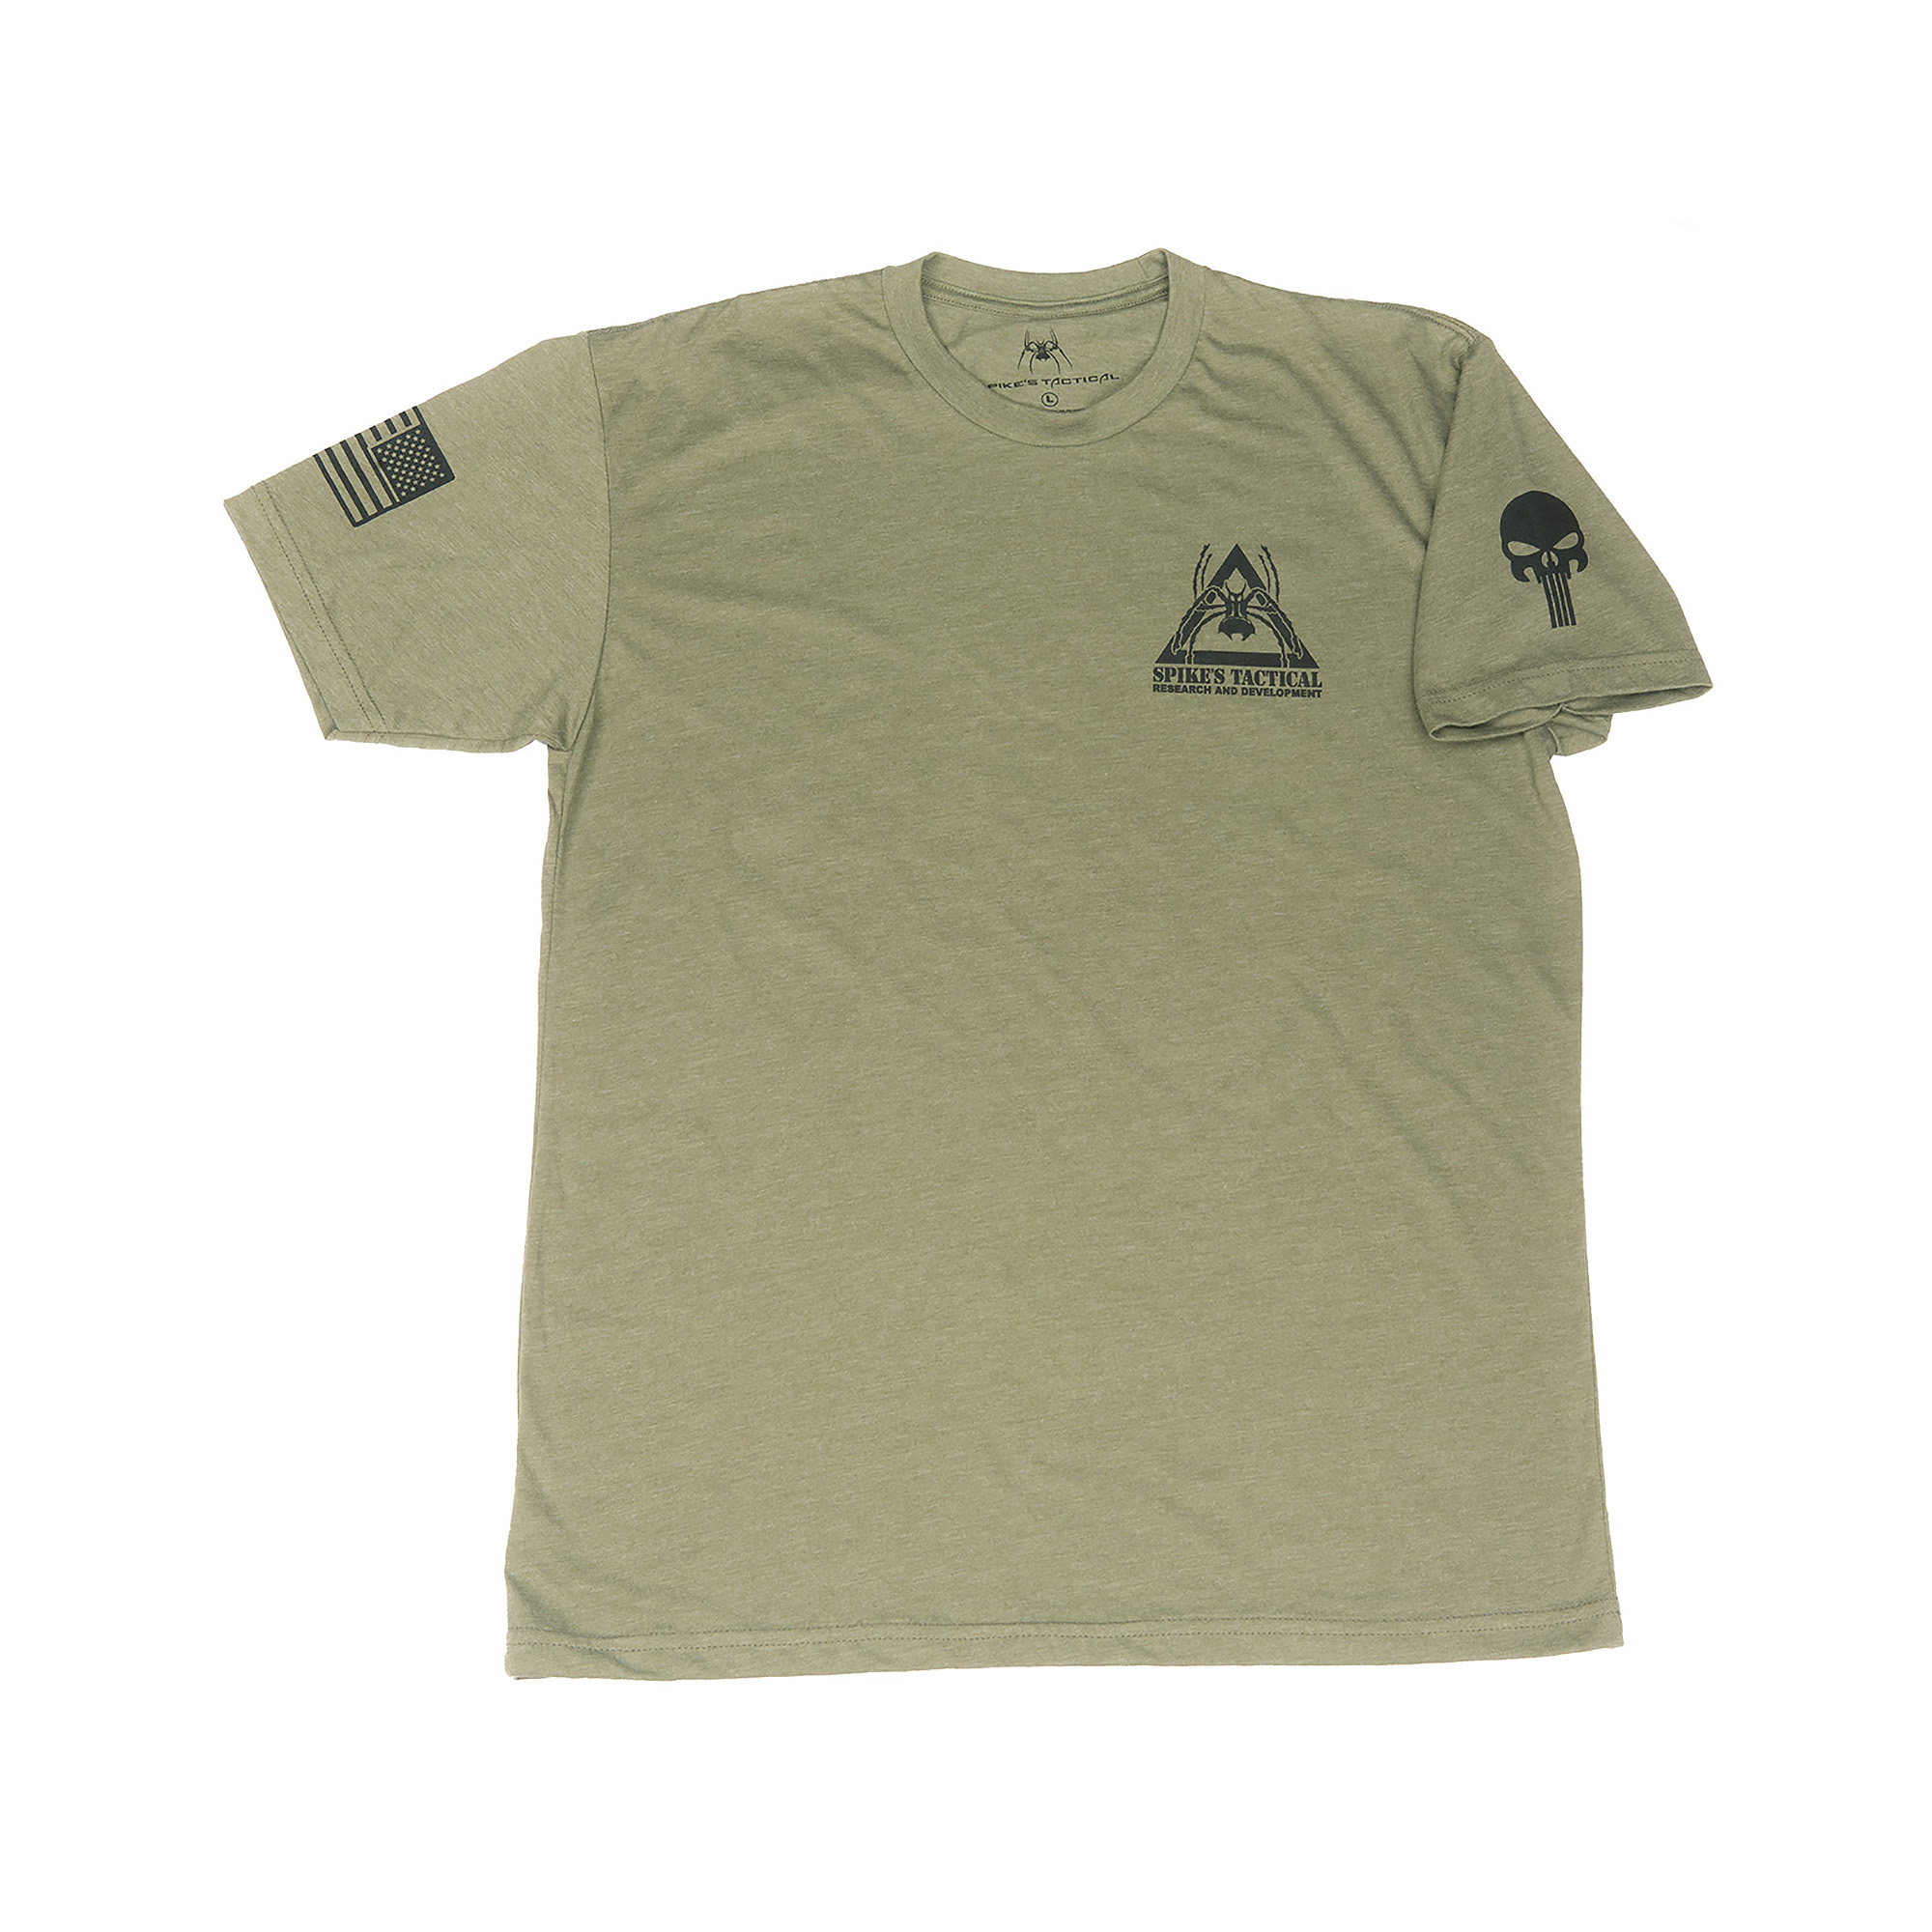 Spike's Tactical fully embraces the belief that America is awesome and worth fighting for. Show your support for Spike's Tactical with this comfortable cotton/polyester blend T-Shirt.